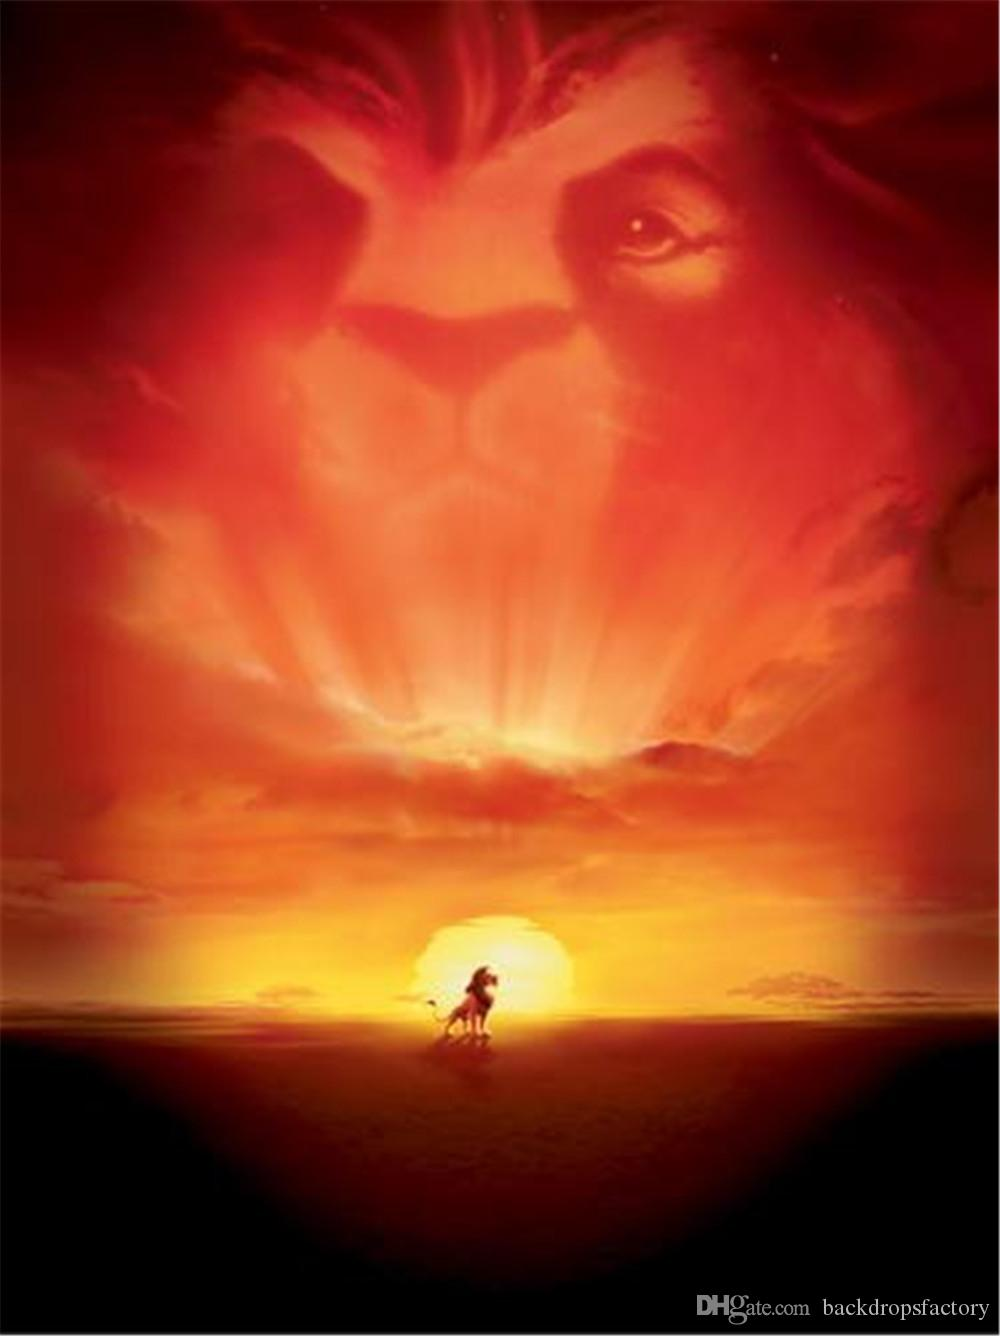 Lion King Cartoon Backdrop Vinyl Cloth Beautiful Sunset Digital Kid Studio Background Children Photography Backgrounds 5x7ft